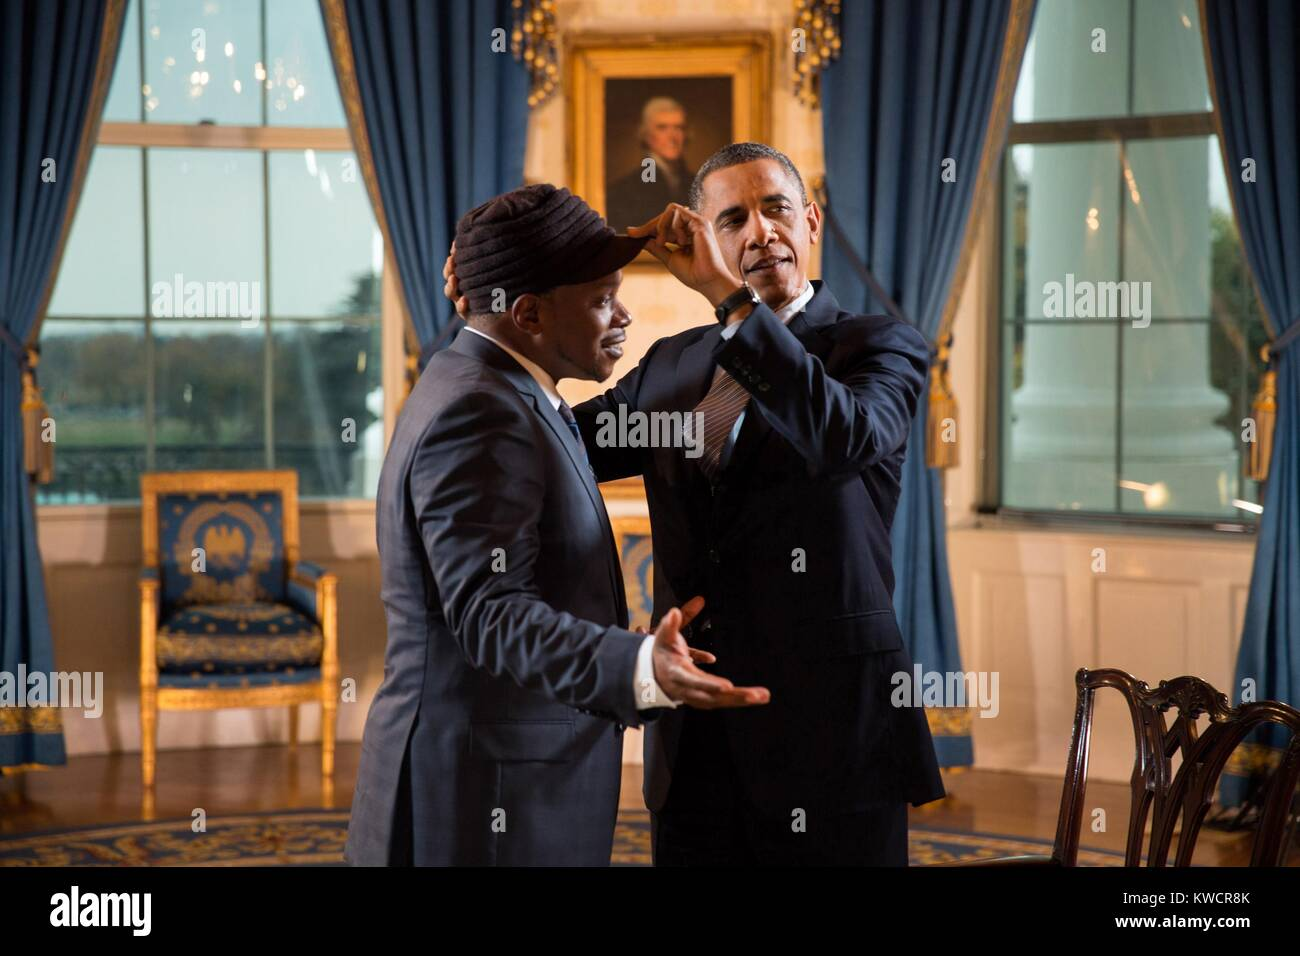 President Barack Obama adjusts Sway Calloway's hat in the Blue Room of the White House. The President gave an - Stock Image